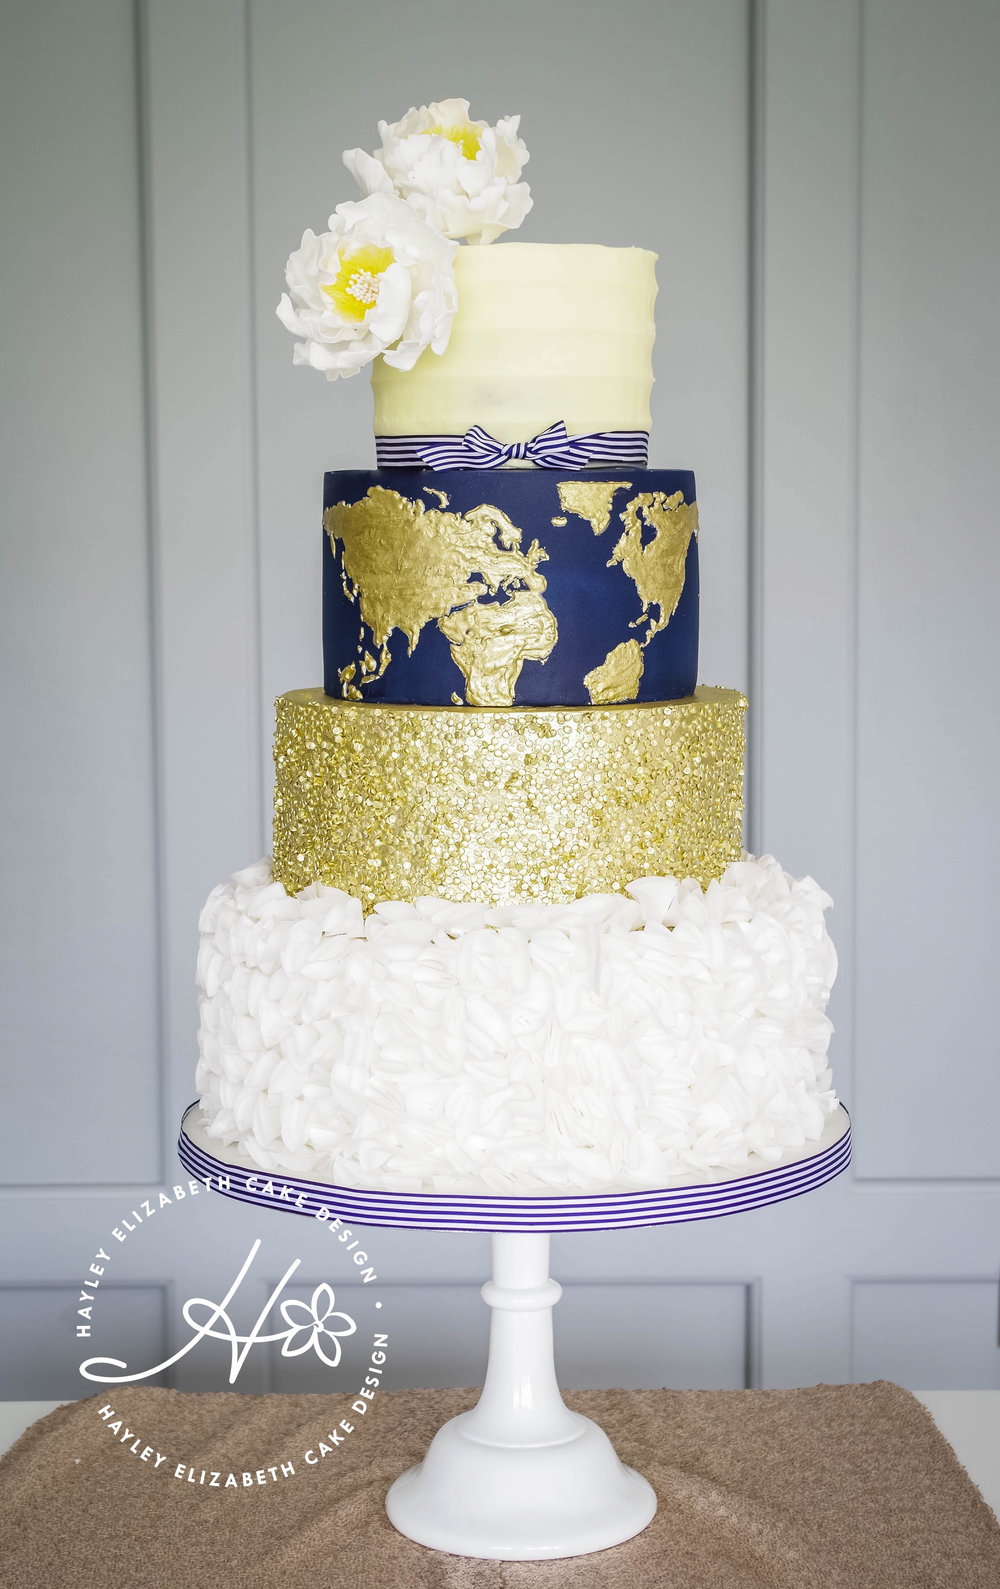 navy-gold-wedding-cake-with-world-map-detail.jpg